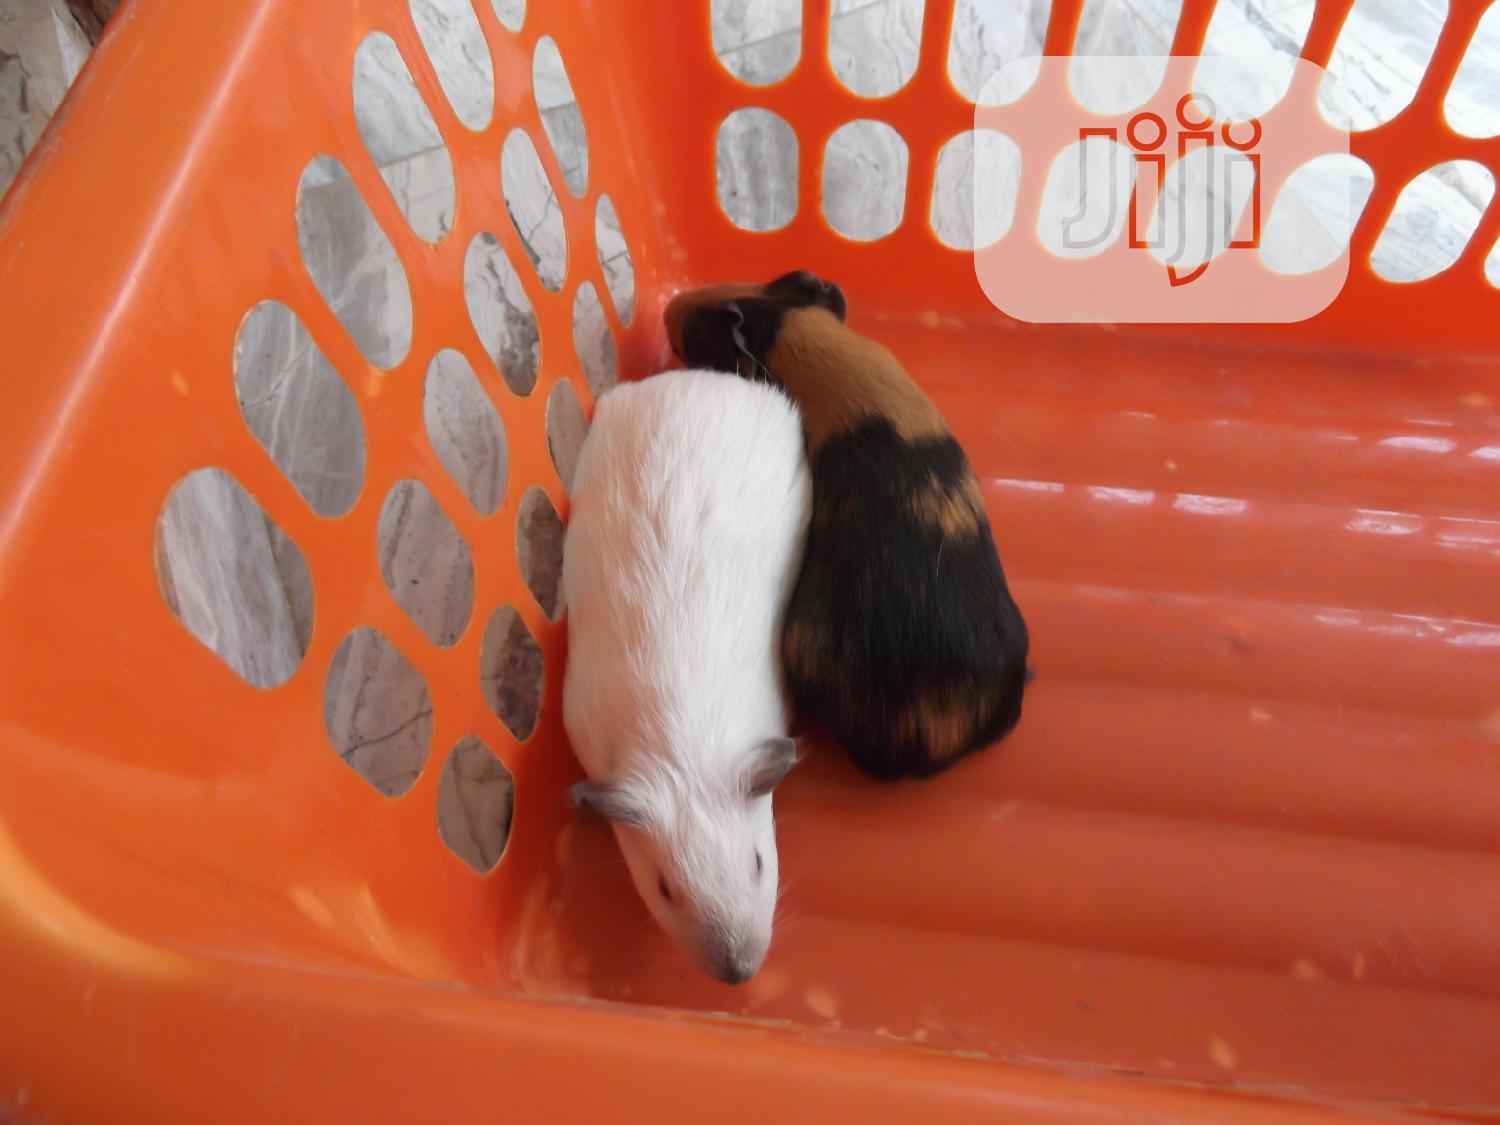 Archive: Guinea Pigs Are Available in Jahland Animal Farm Umuahia